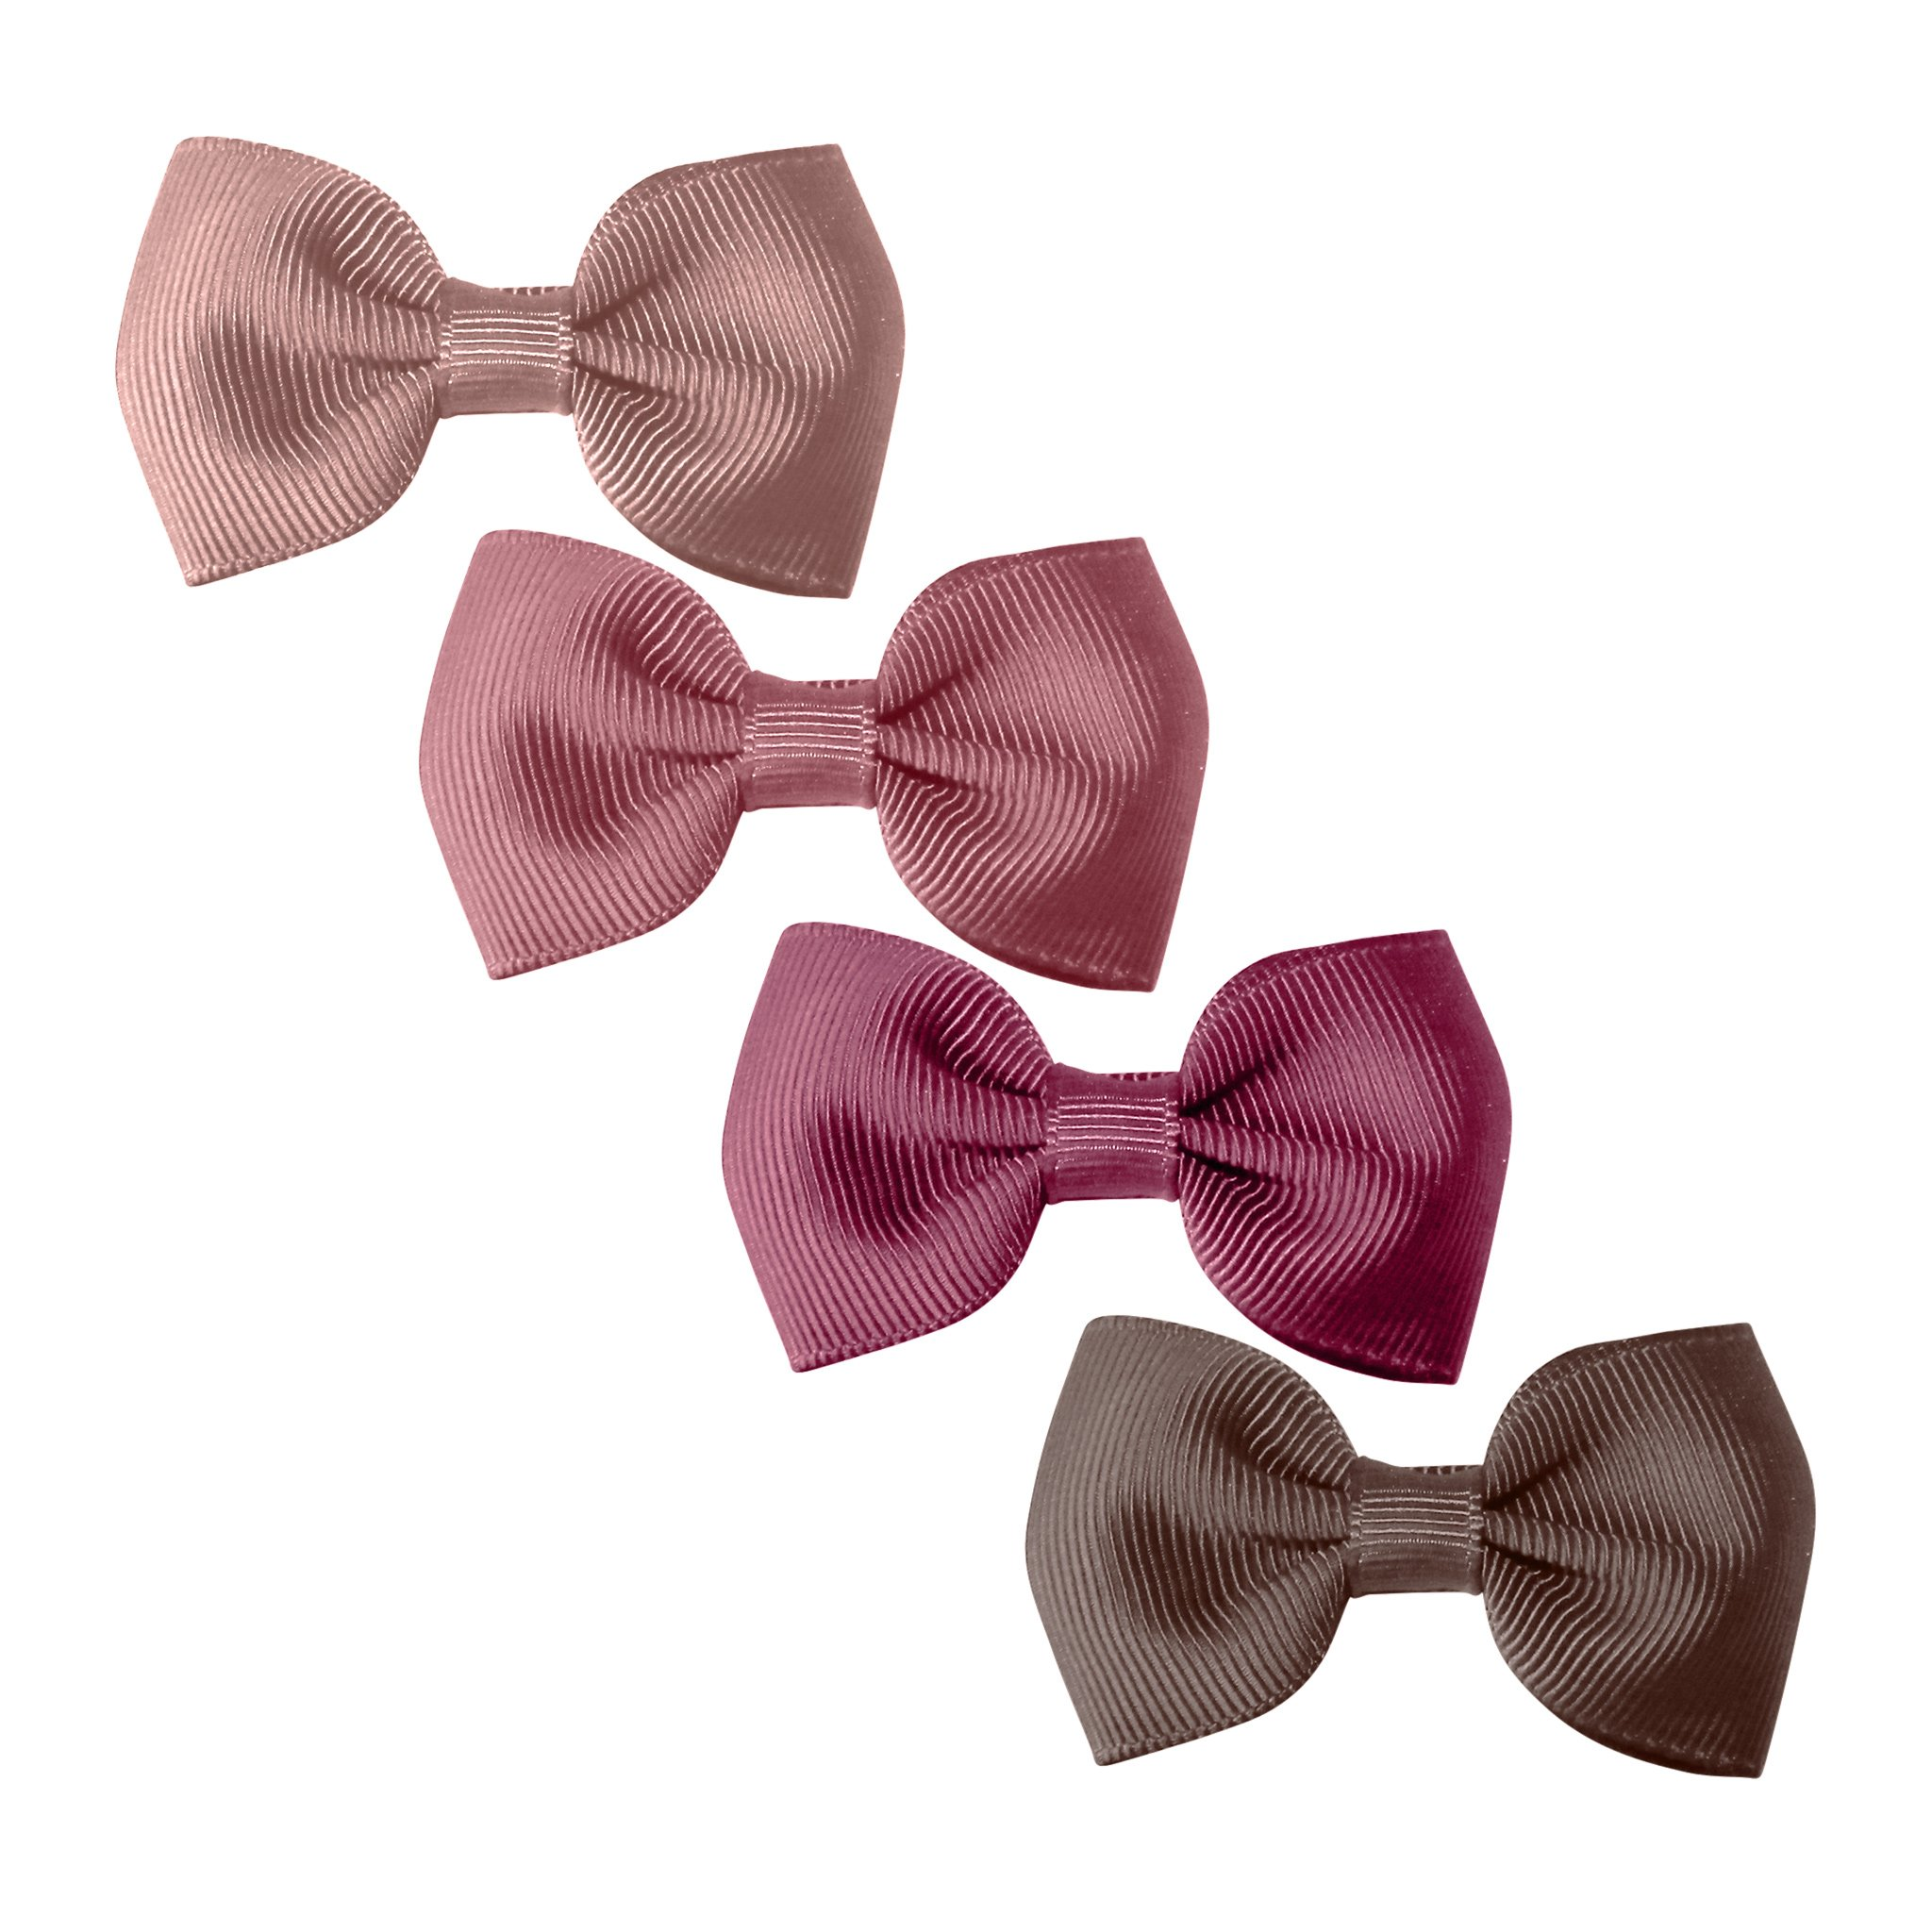 Image of Milledeux® Gift set - 4 Small bowtie bows - alligator clip - Mauves